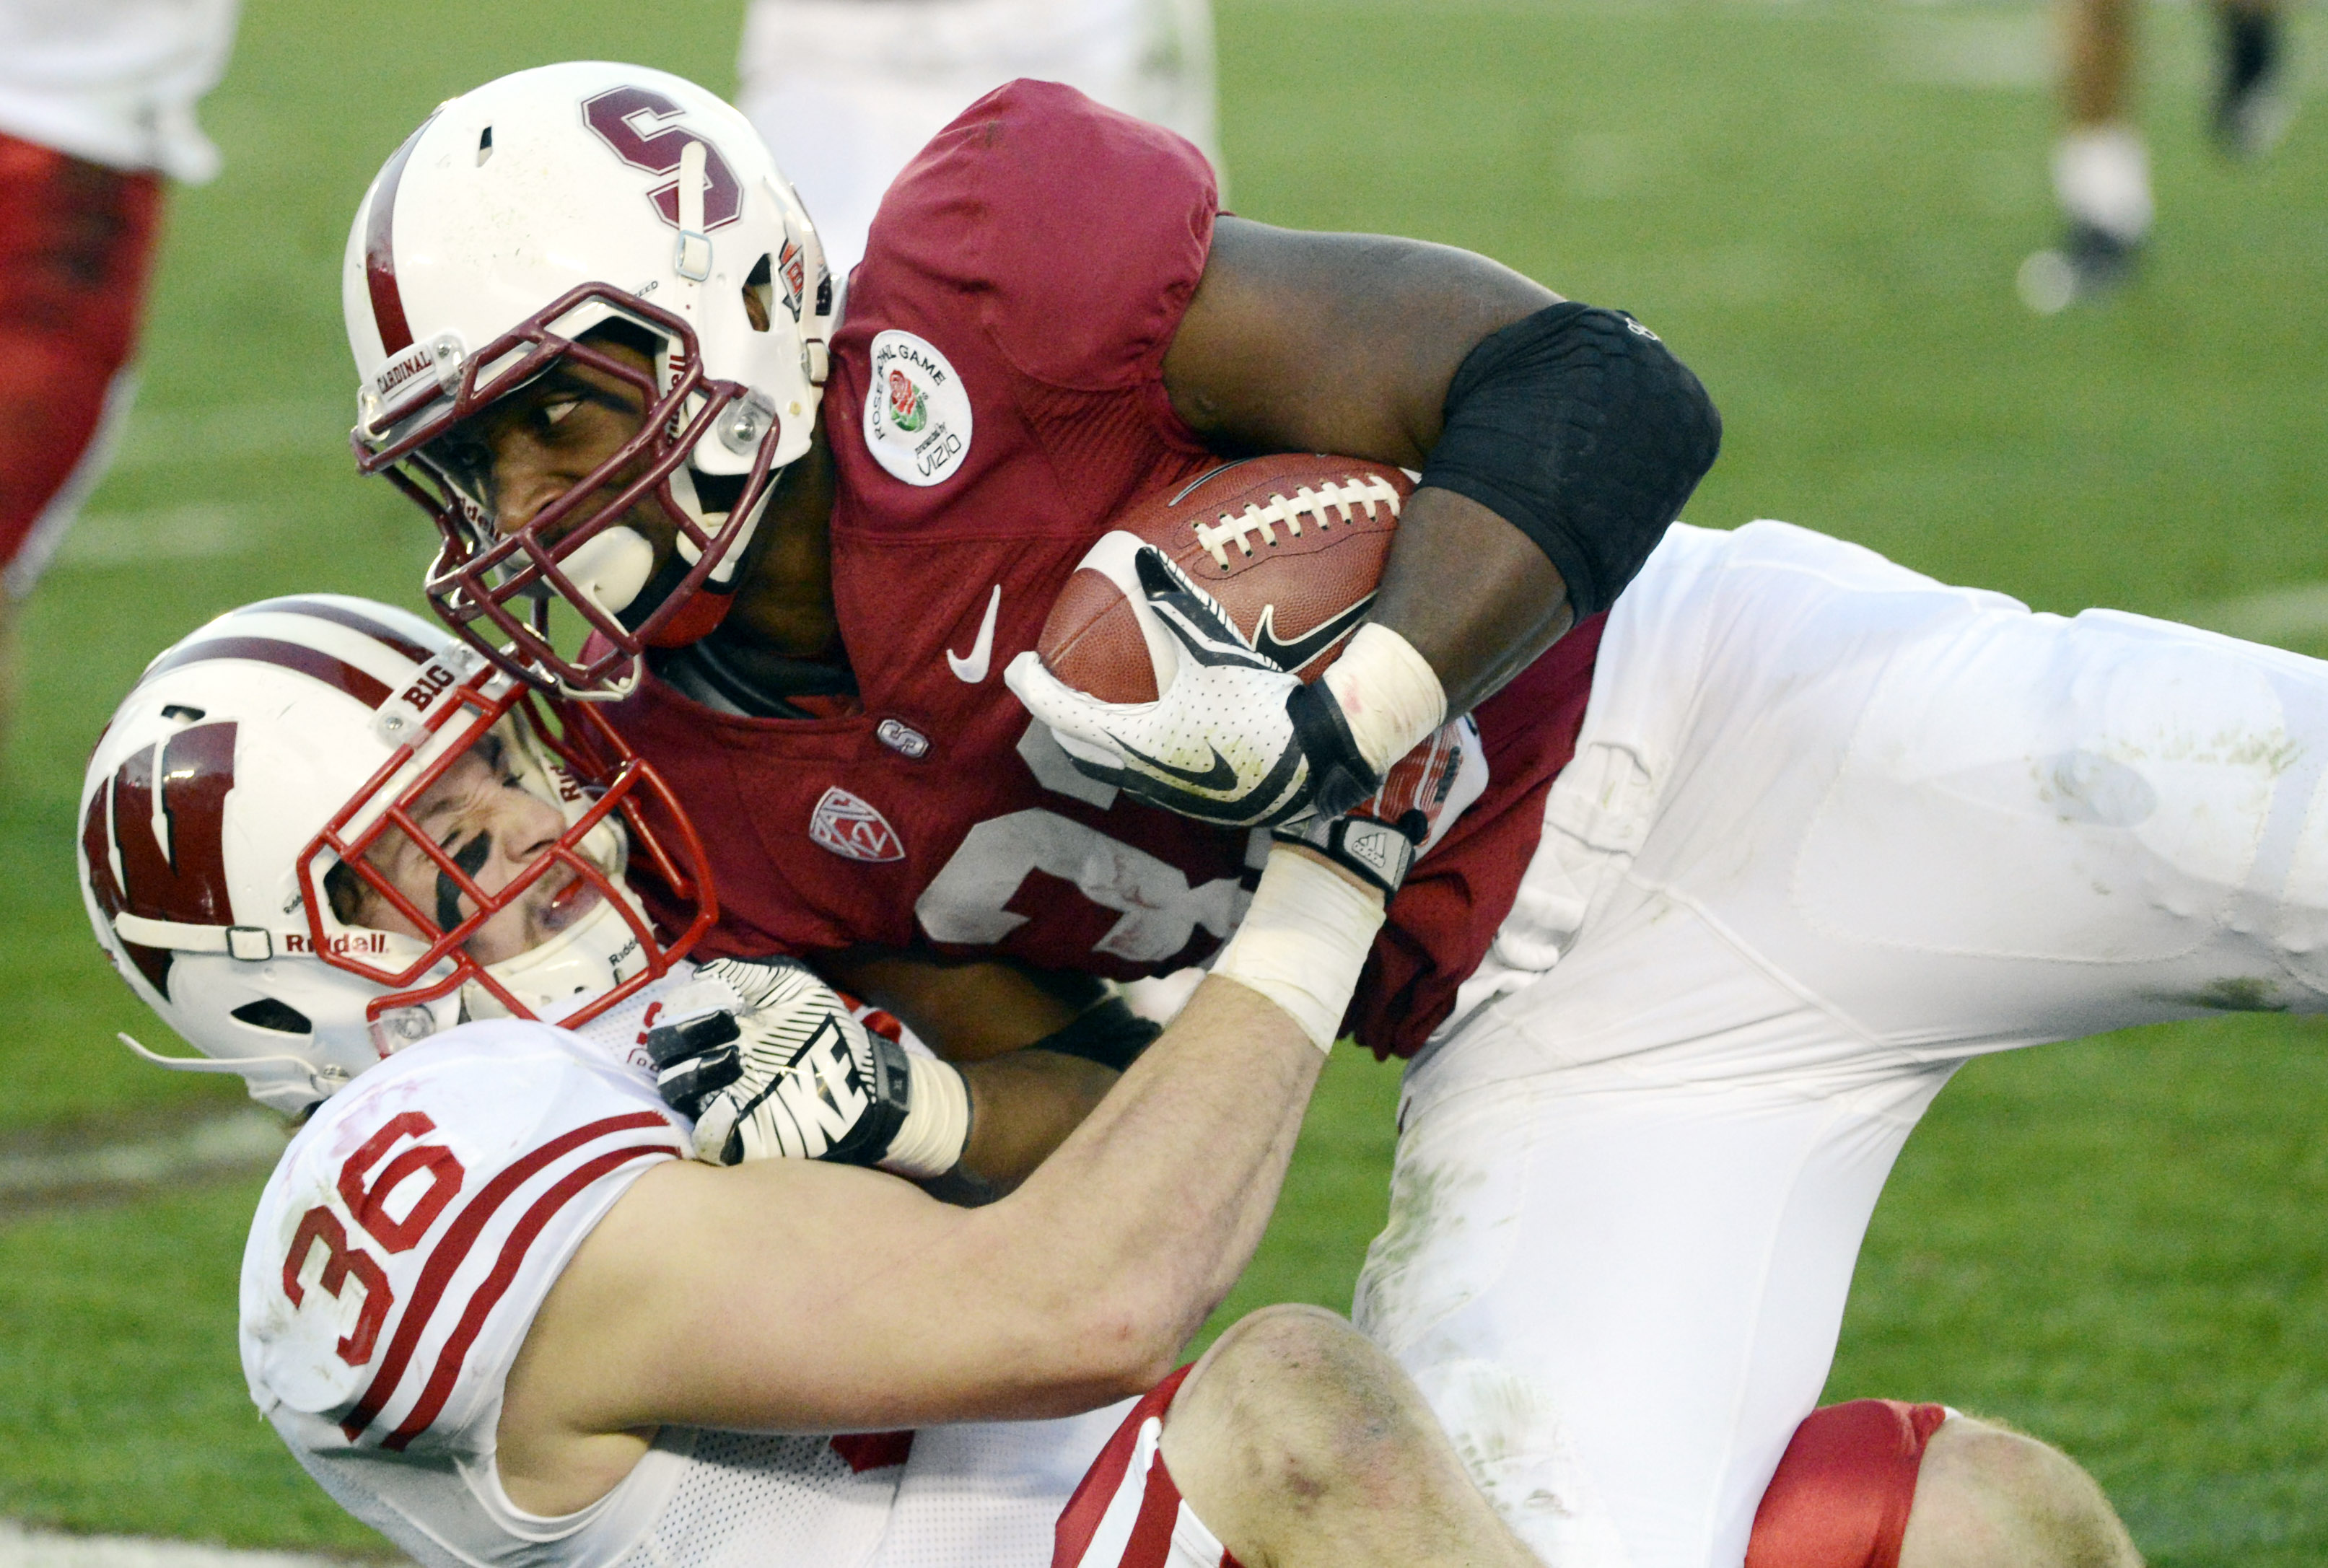 Jan 1, 2013; Pasadena, CA, USA; Stanford Cardinal running back Stepfan Taylor (33) celebrates the 20-14 victory against the Wisconsin Badgers during the 2013 Rose Bowl.  Mandatory Credit: Gary A. Vasquez-USA TODAY Sports